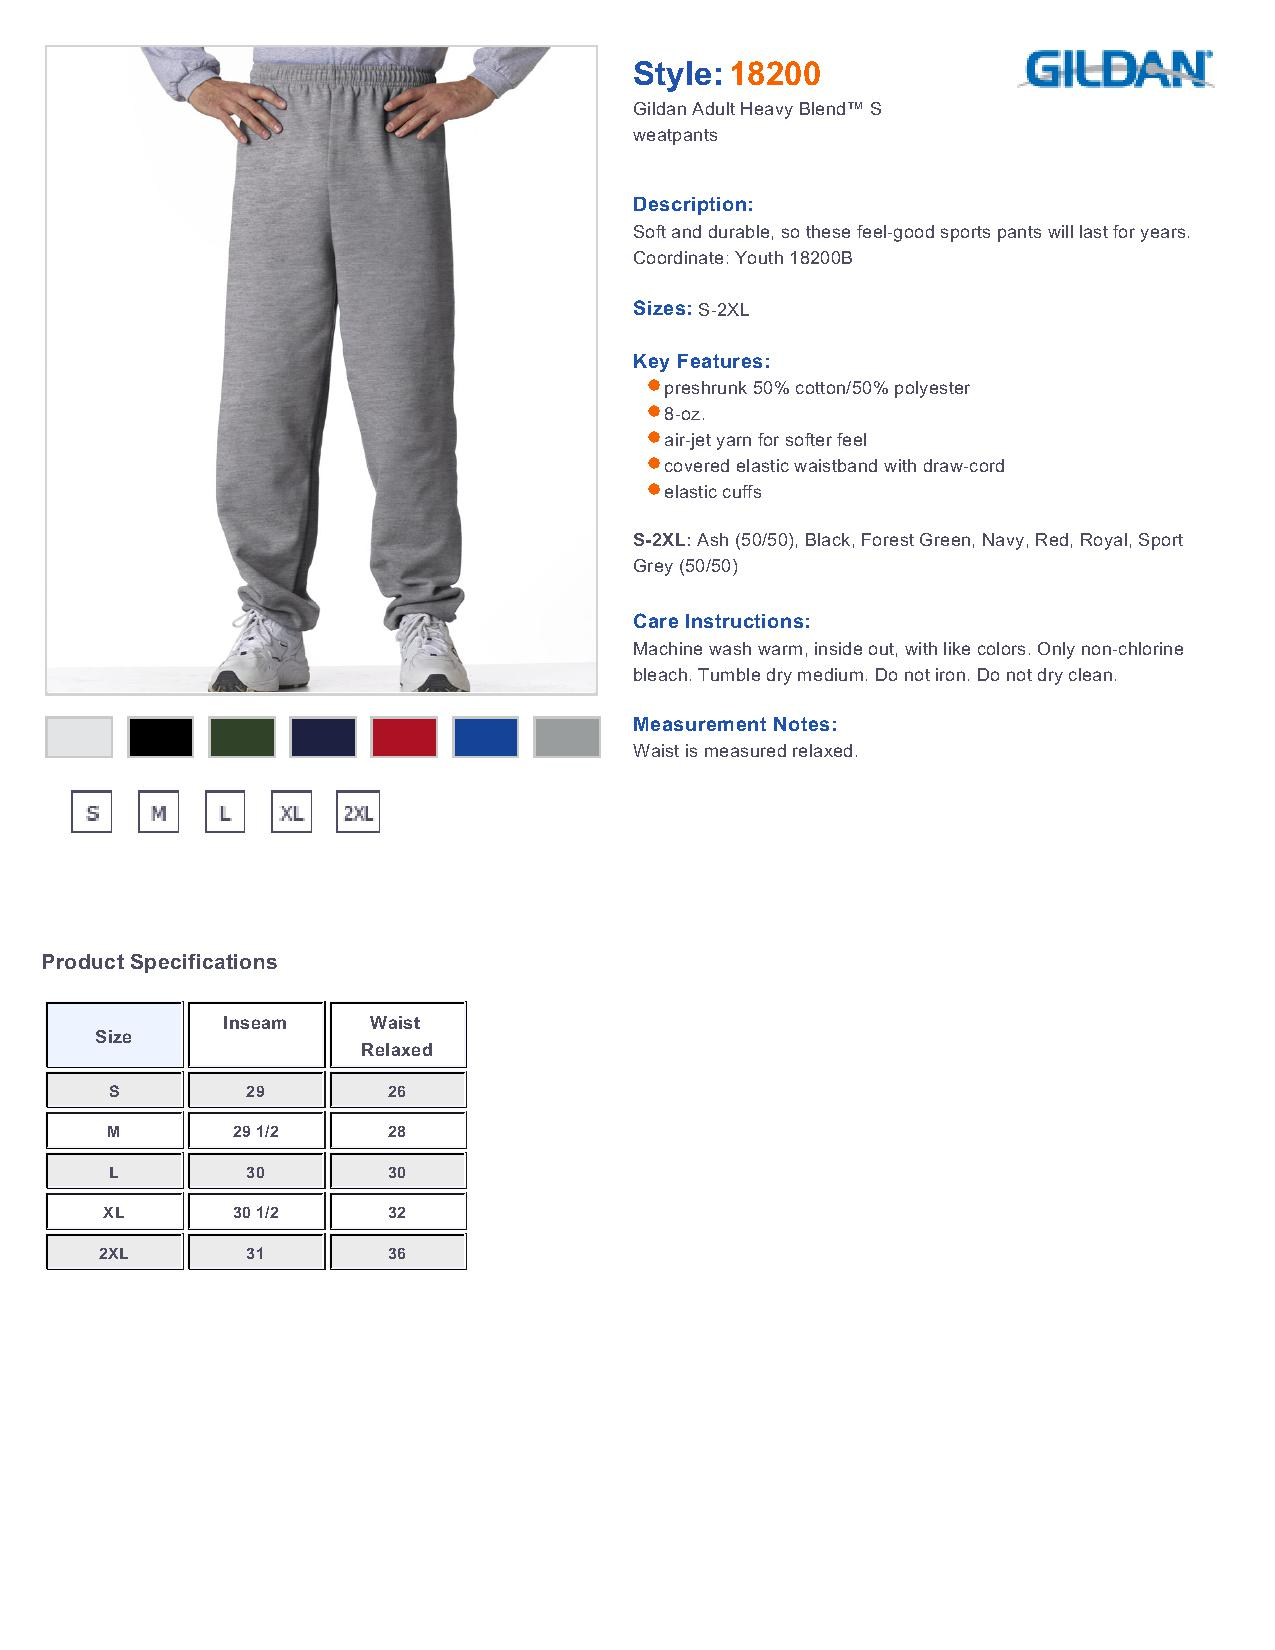 Gildan 18200 heavy blend sweatpants men 39 s pants for Gildan brand t shirt size chart